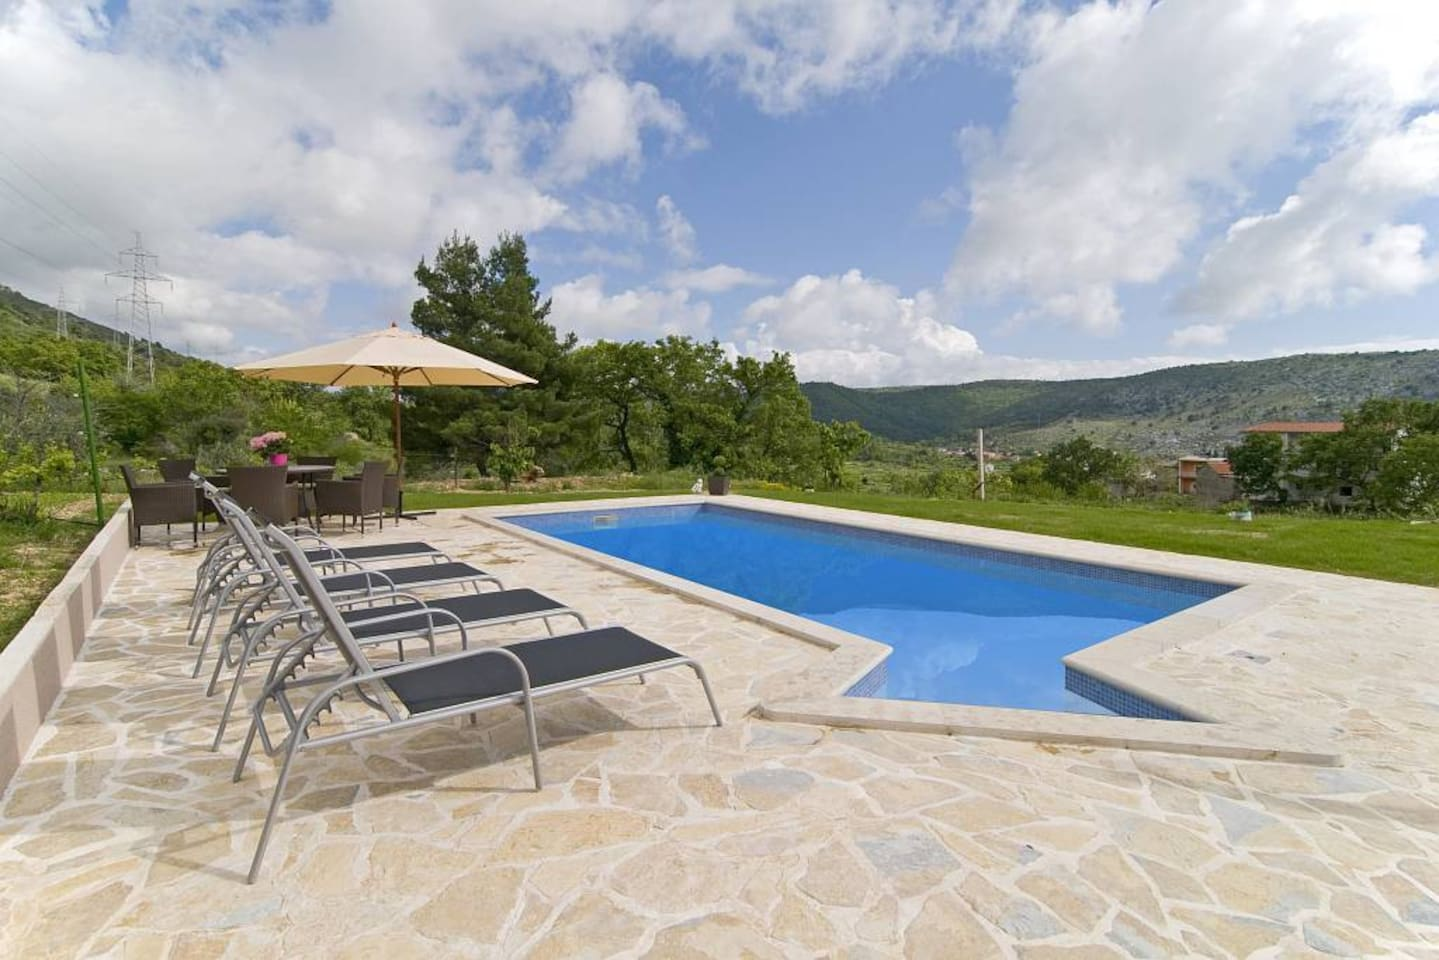 villa josipa houses for rent in srinjine split dalmatia county